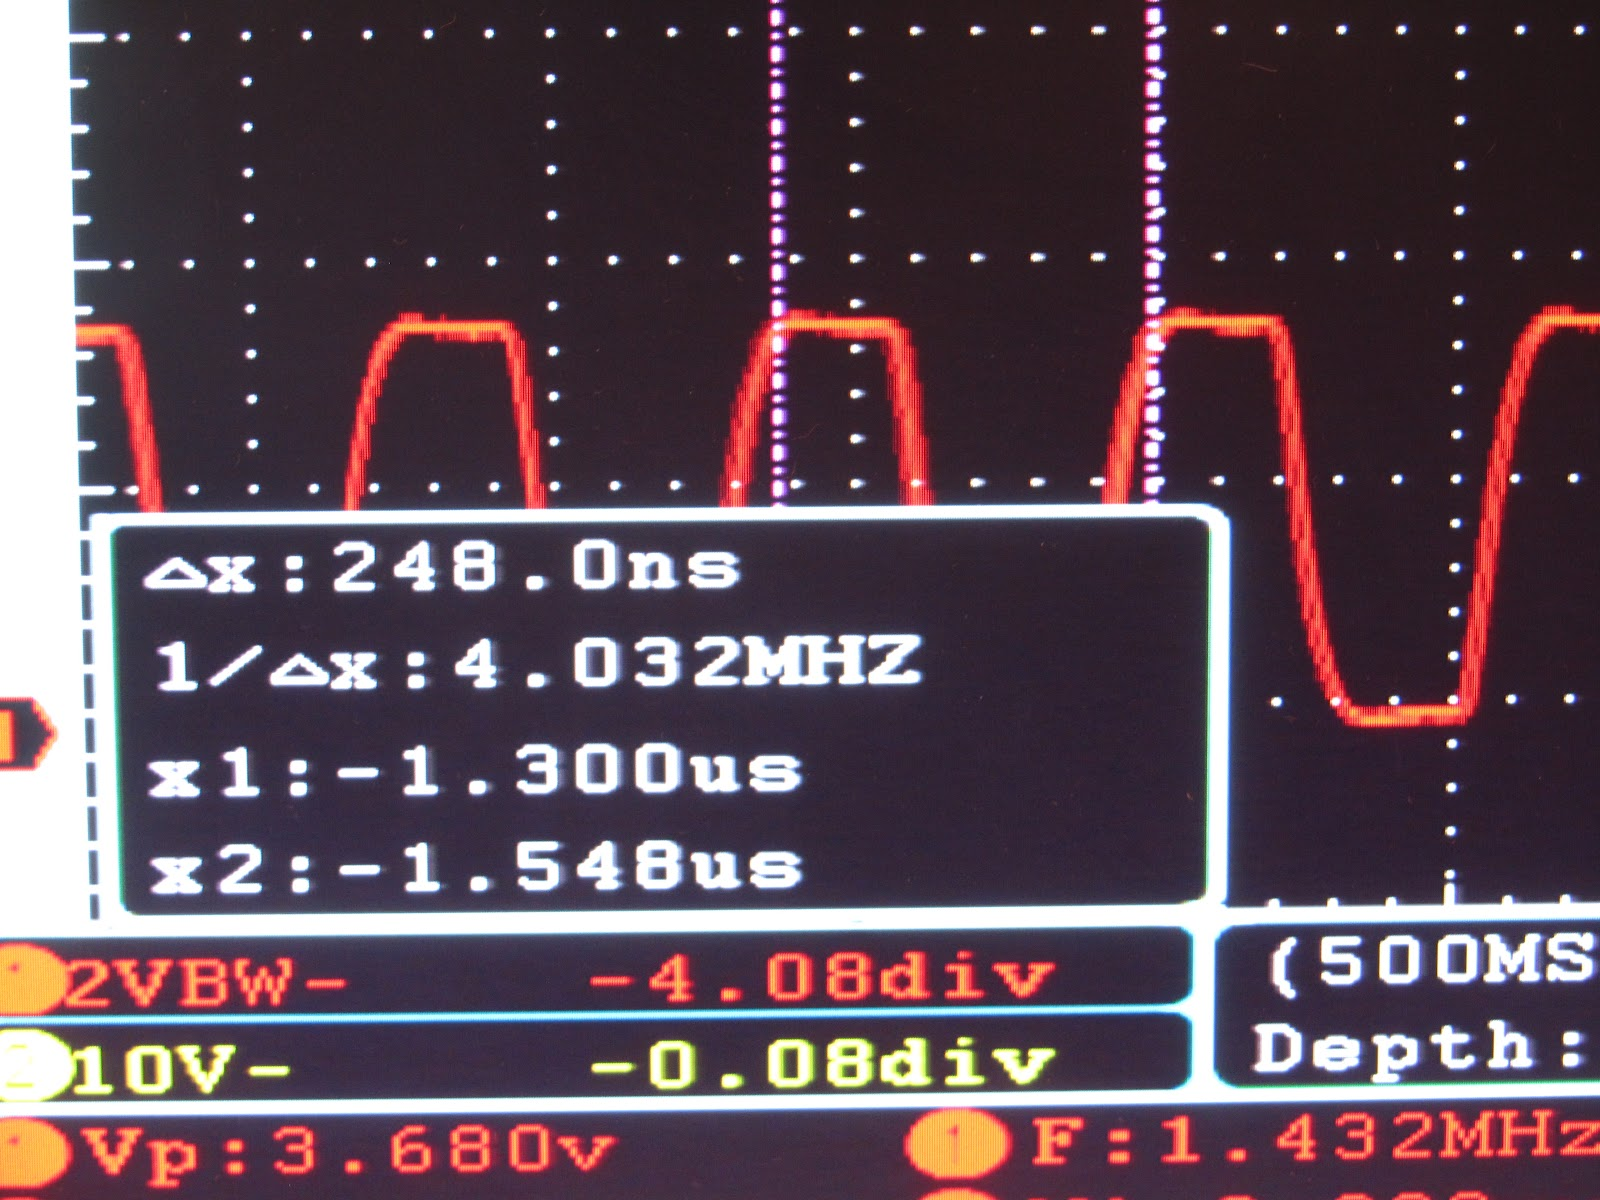 Forty Two And Now July 2012 How To Build A Digital Potentiometer Circuit Using Mcp4131 Manually Placing The Measurement Cursors At End Of Rising Edge Clock I Found 4032mhz Which Is Pretty Close 4mhz We Expected Need